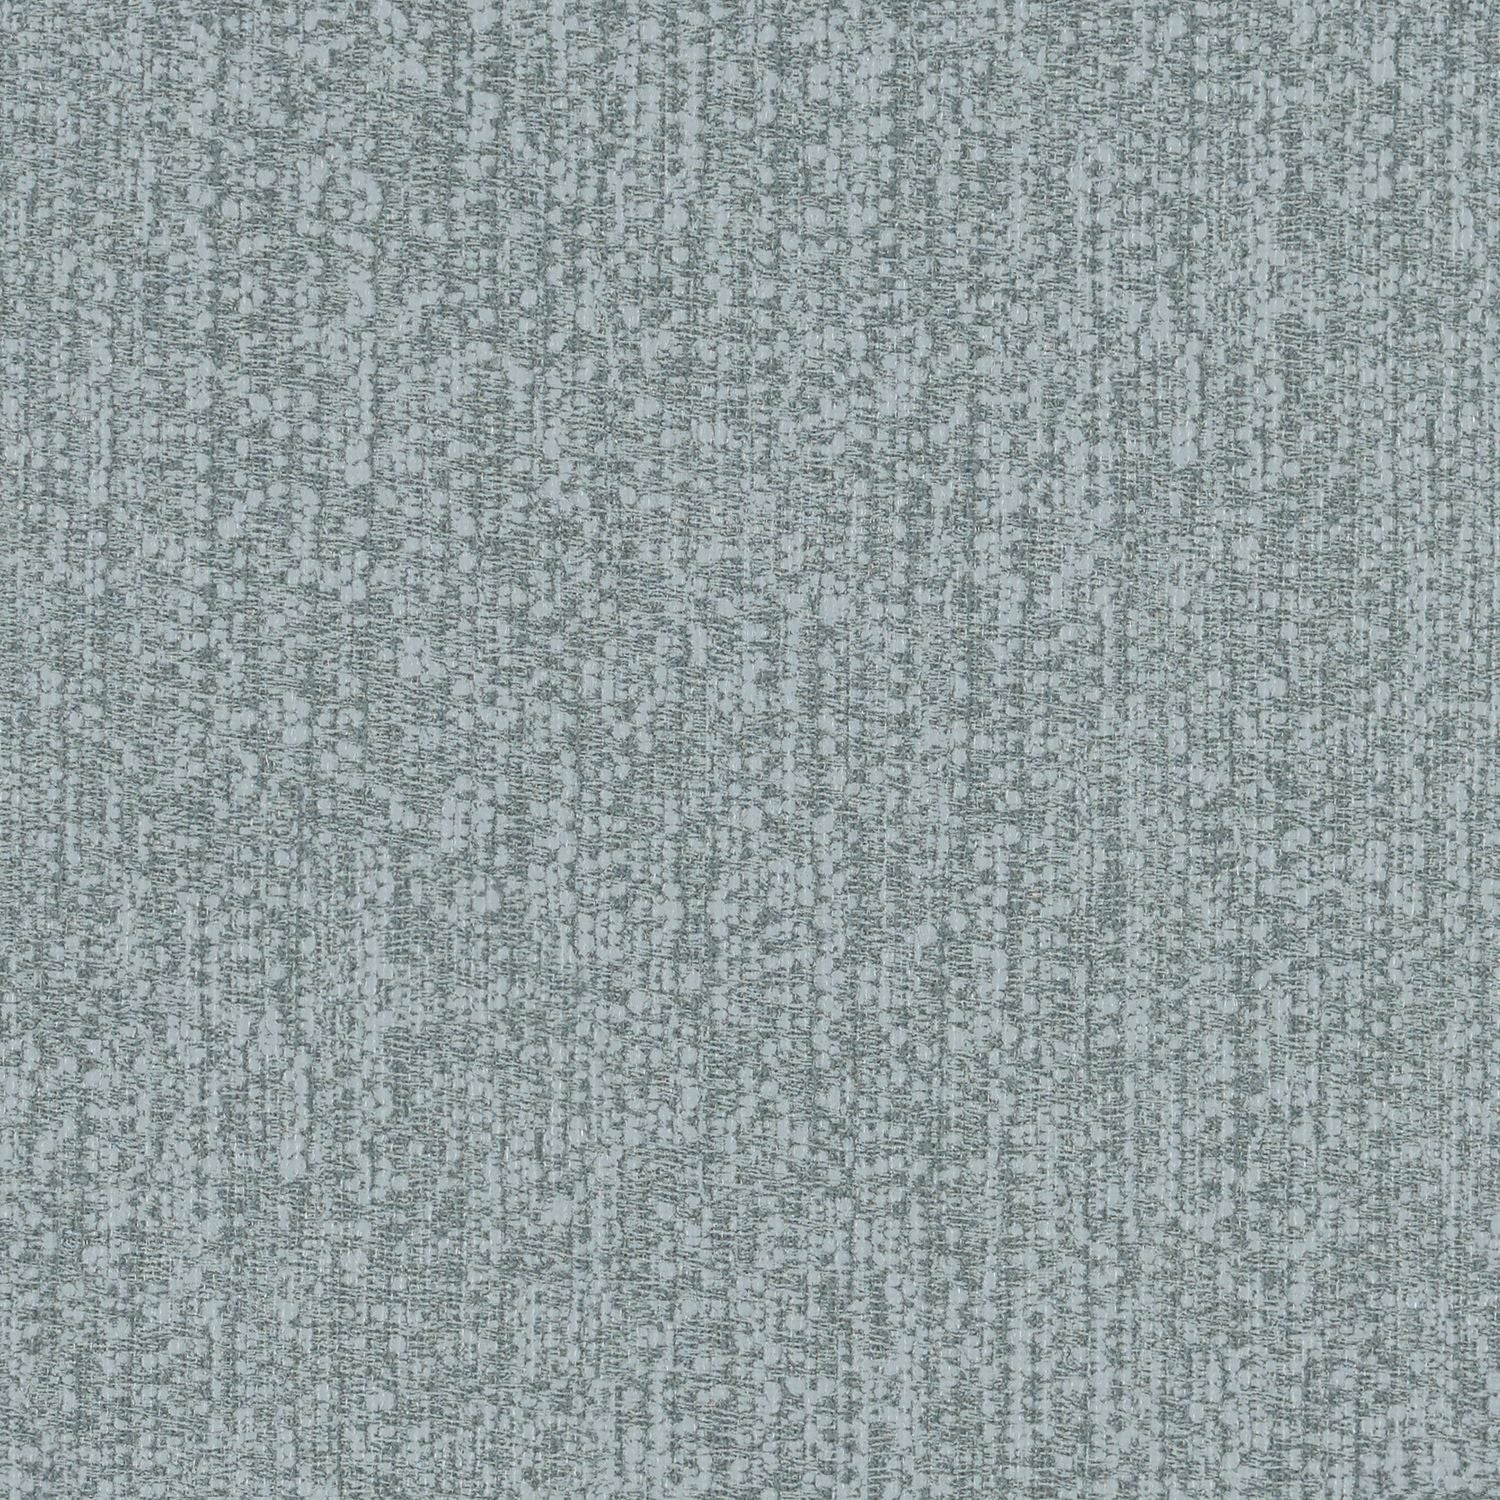 Monotex - Sharkskin - 4053 - 02